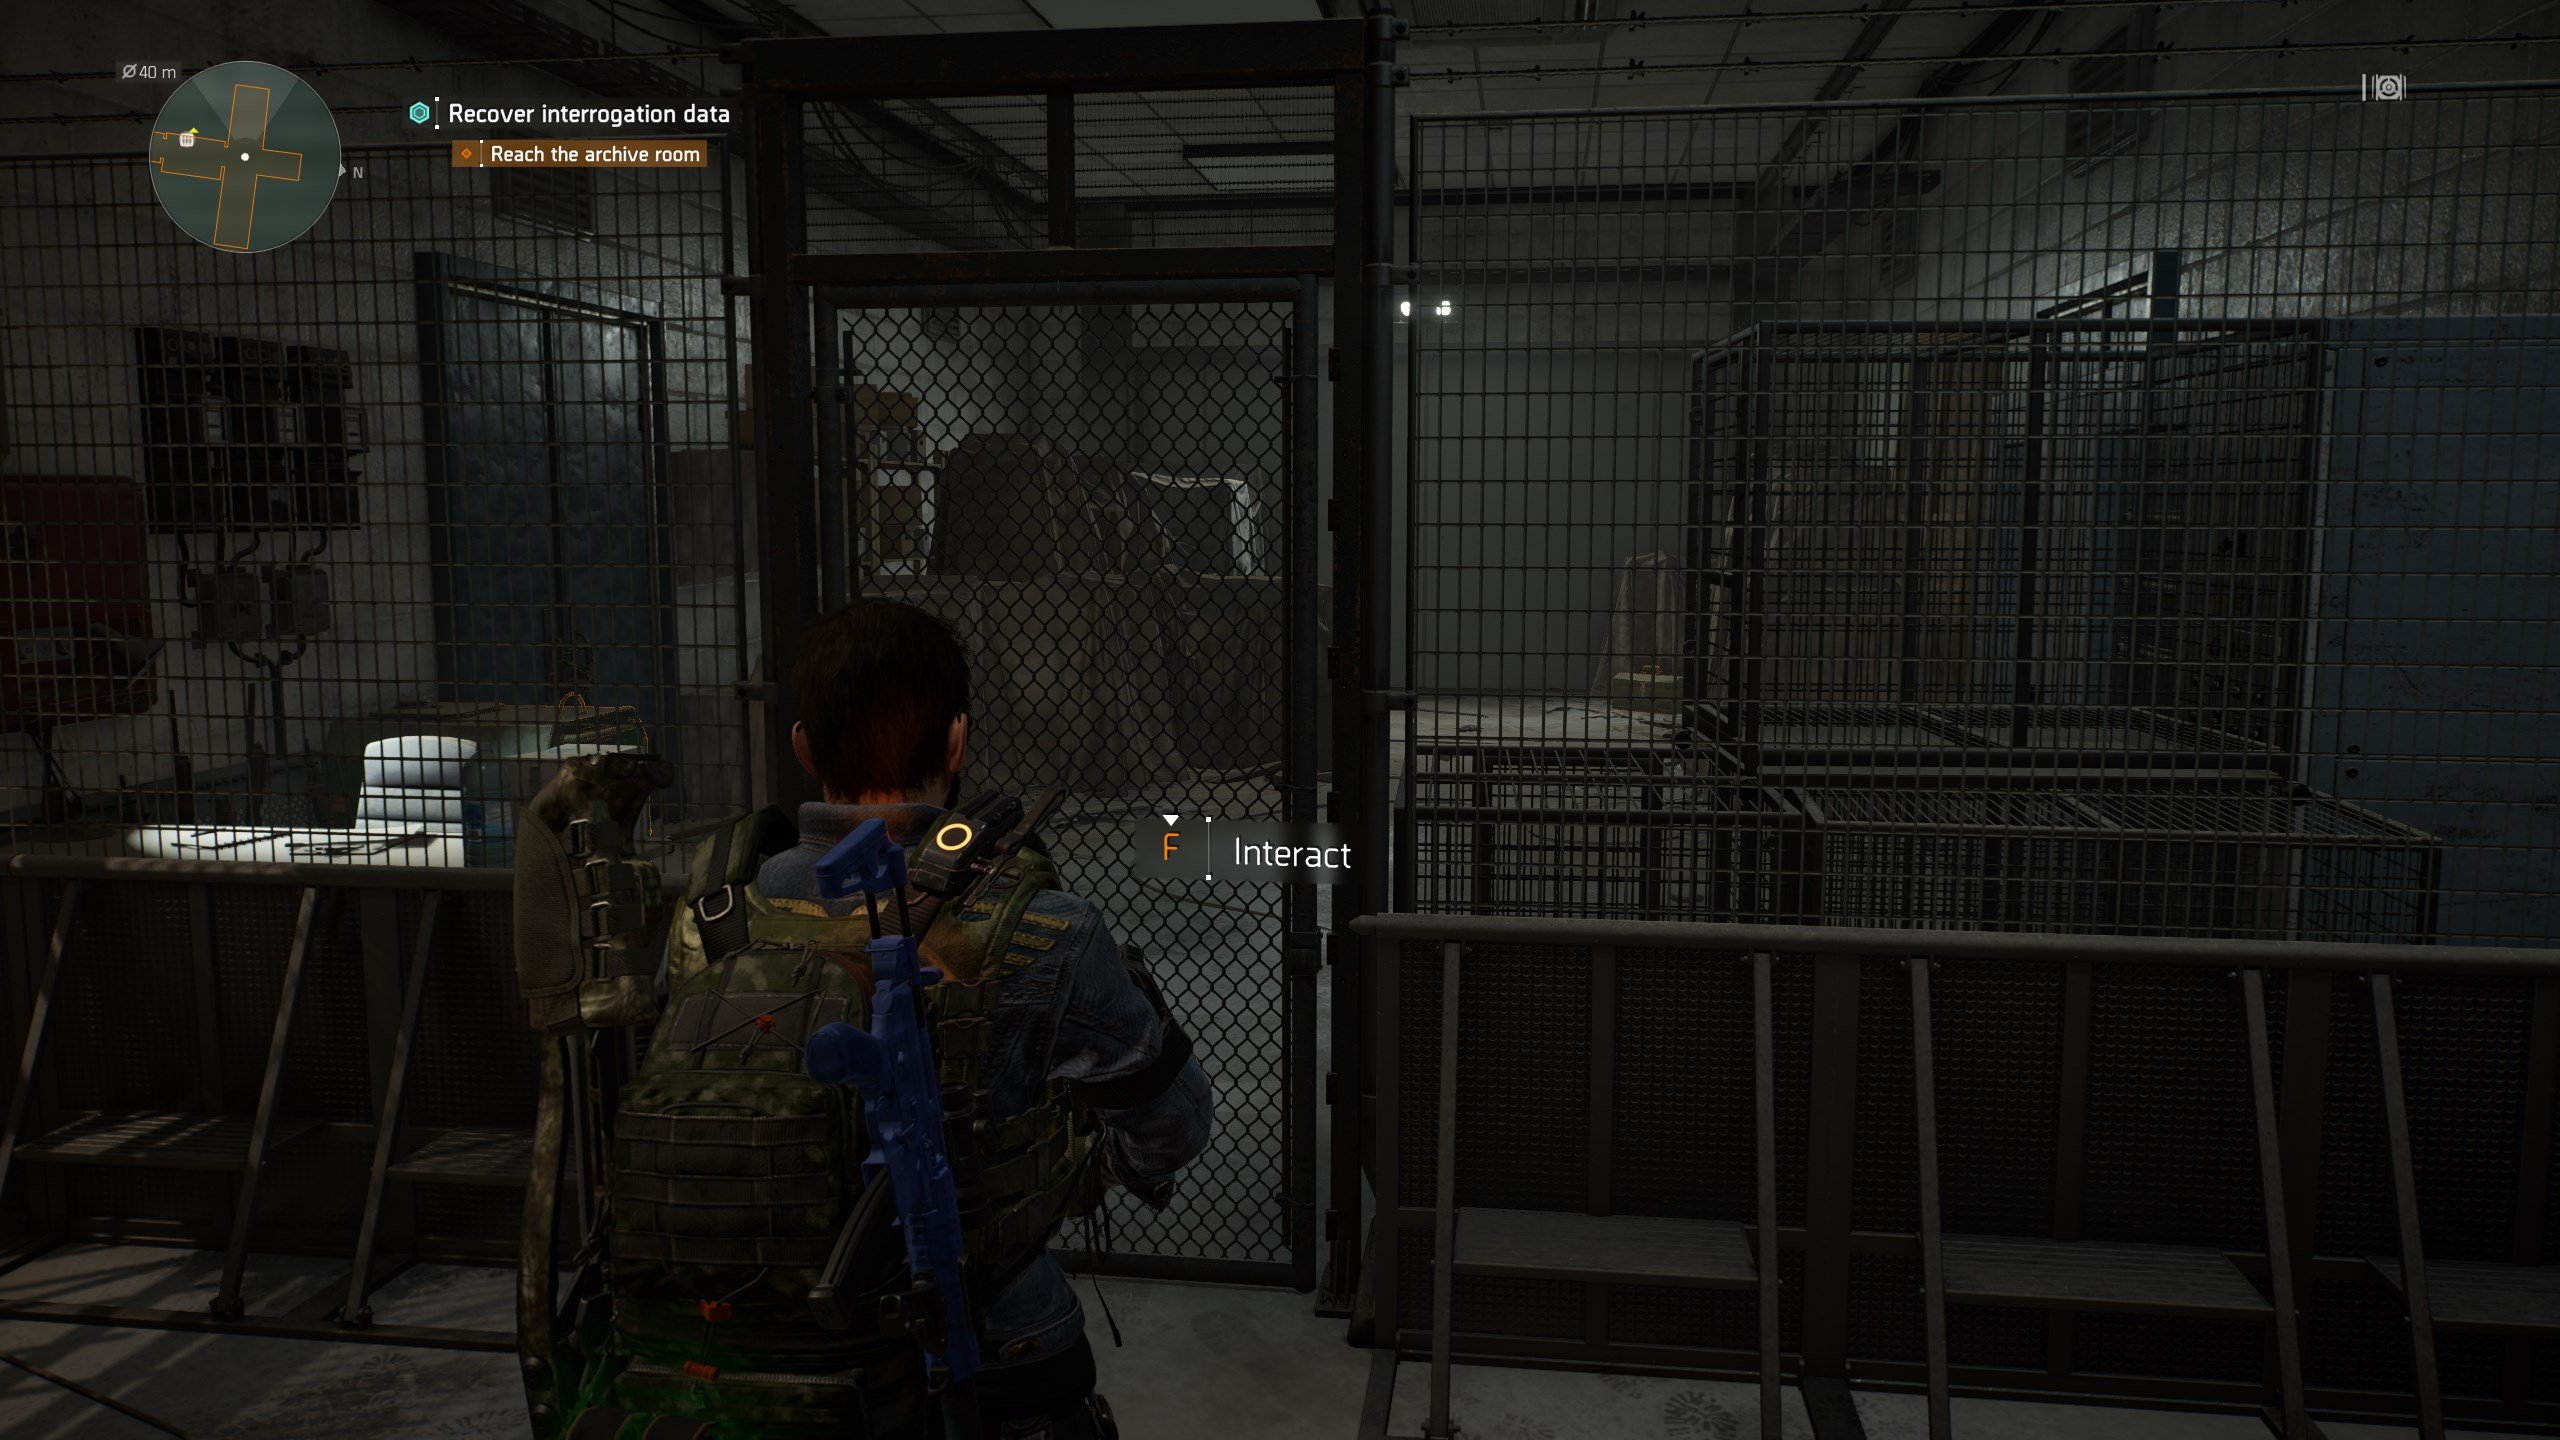 Where to use the American History Museum Basement Key in The Division 2